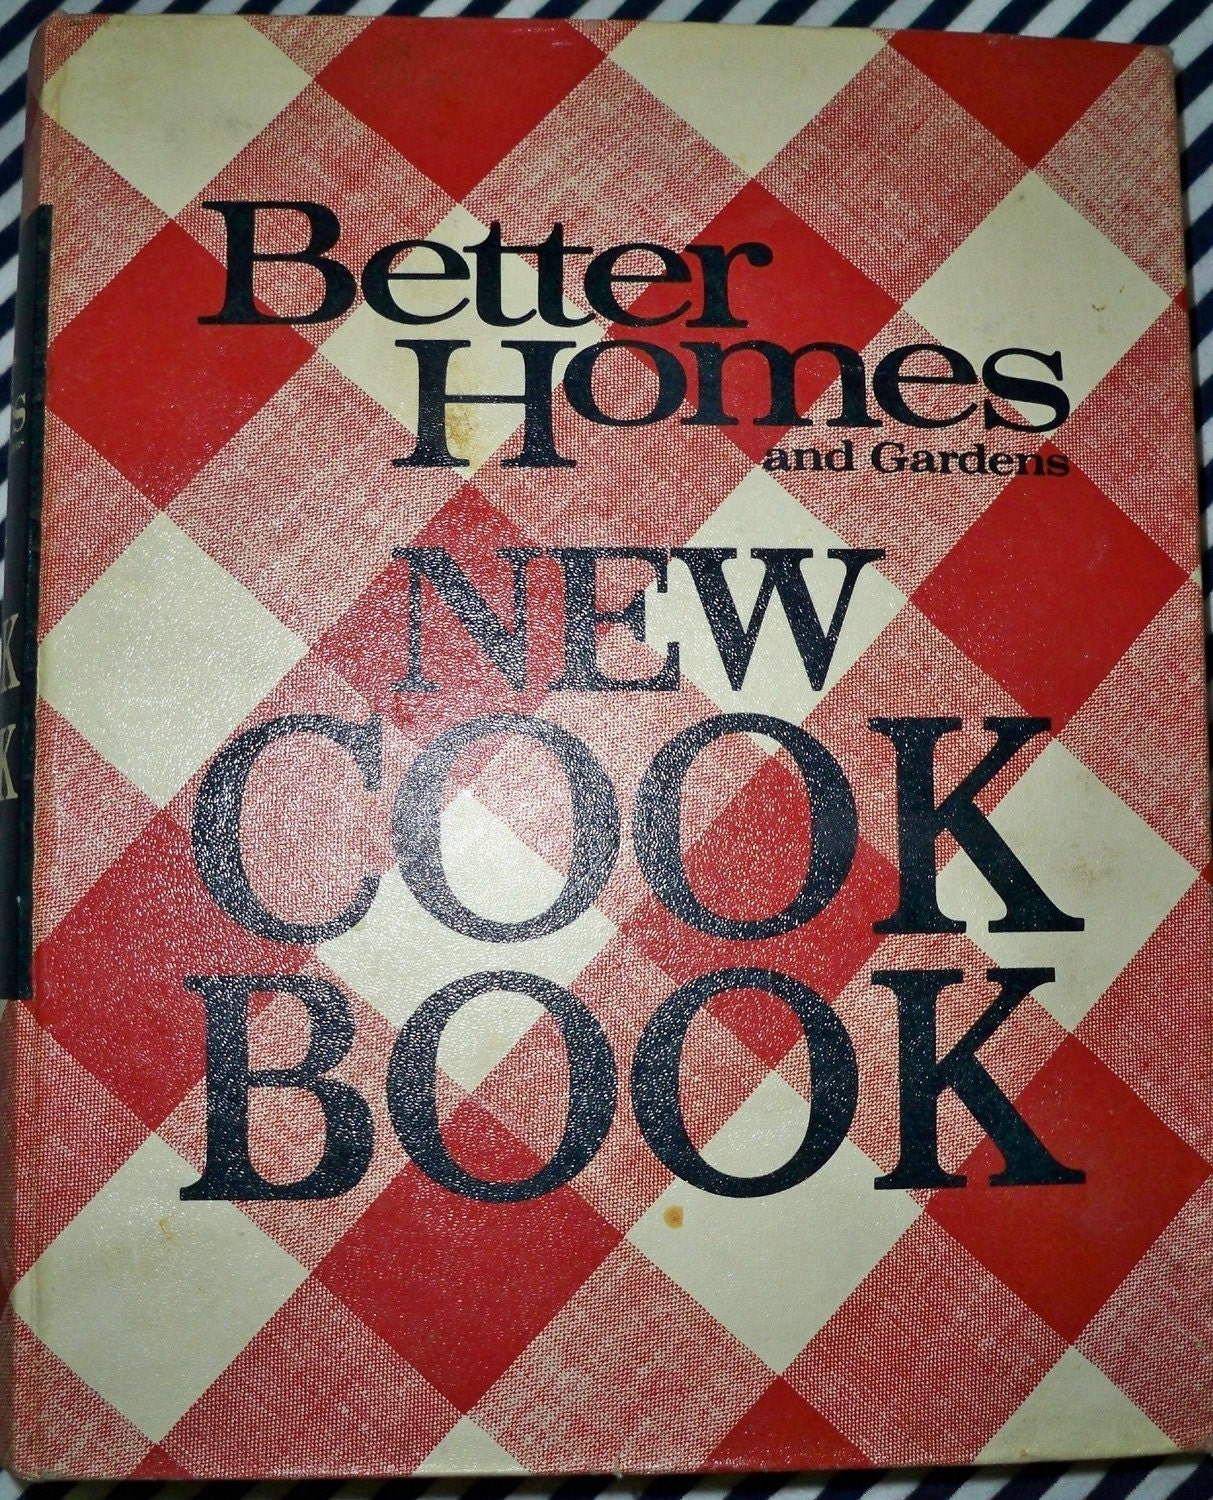 Vintage Better Homes and Gardens New Cookbook 1953 1950's Housewife